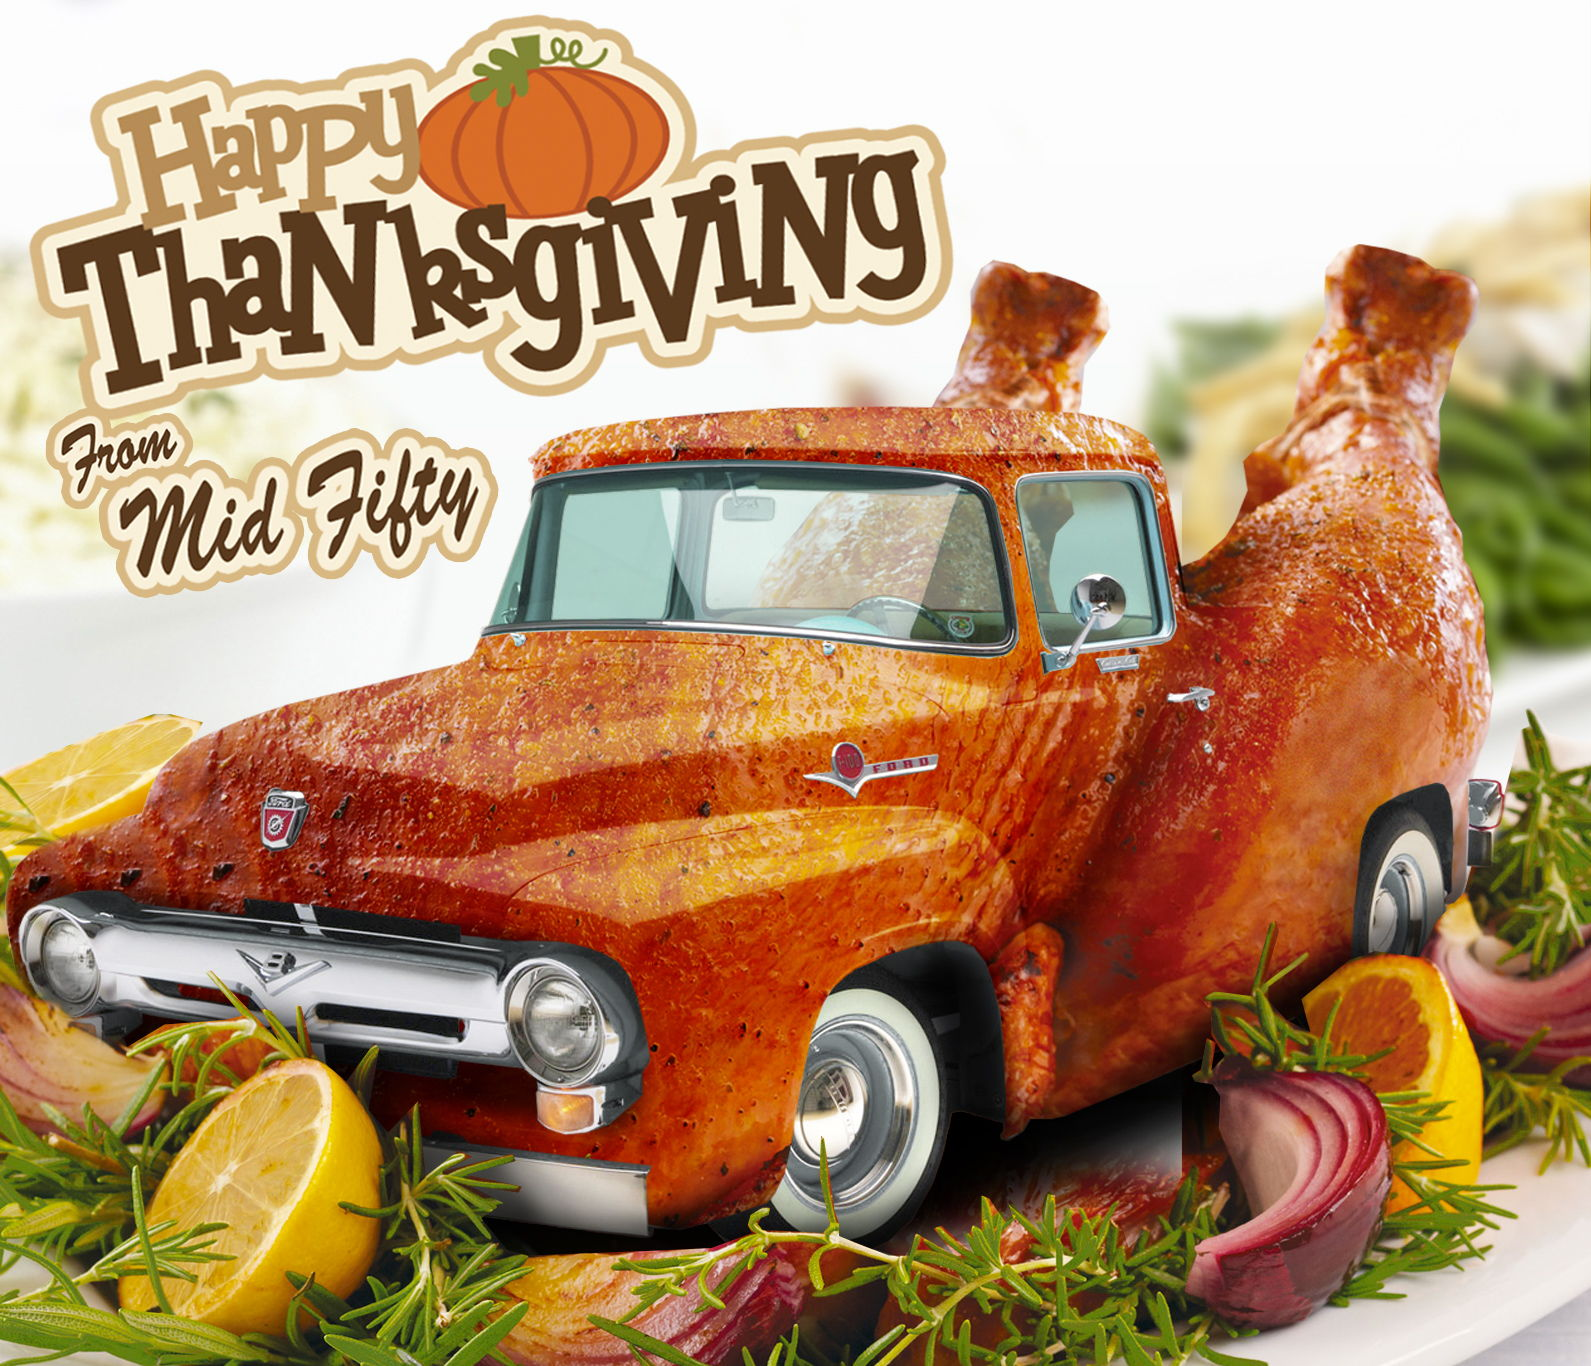 Ford Truck Enthusiasts >> Happy Thanksgiving from Mid Fifty - Ford Truck Enthusiasts Forums